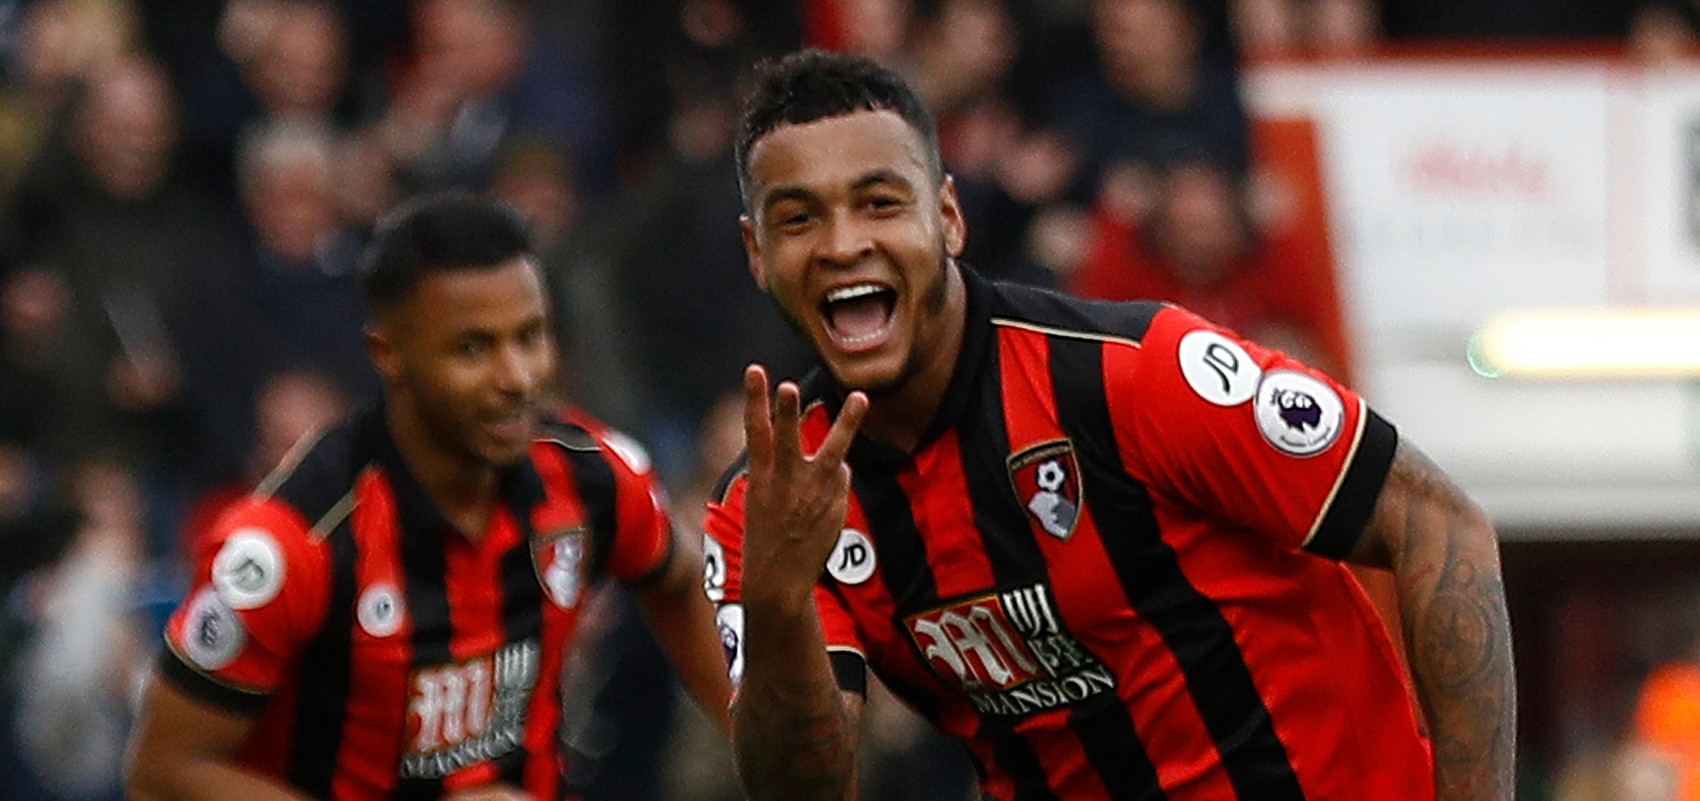 → Josh King enjoyed his best-ever season in FPL to date, scoring 16 goals. What was the-then budget midfielder's starting price in 2016/17?